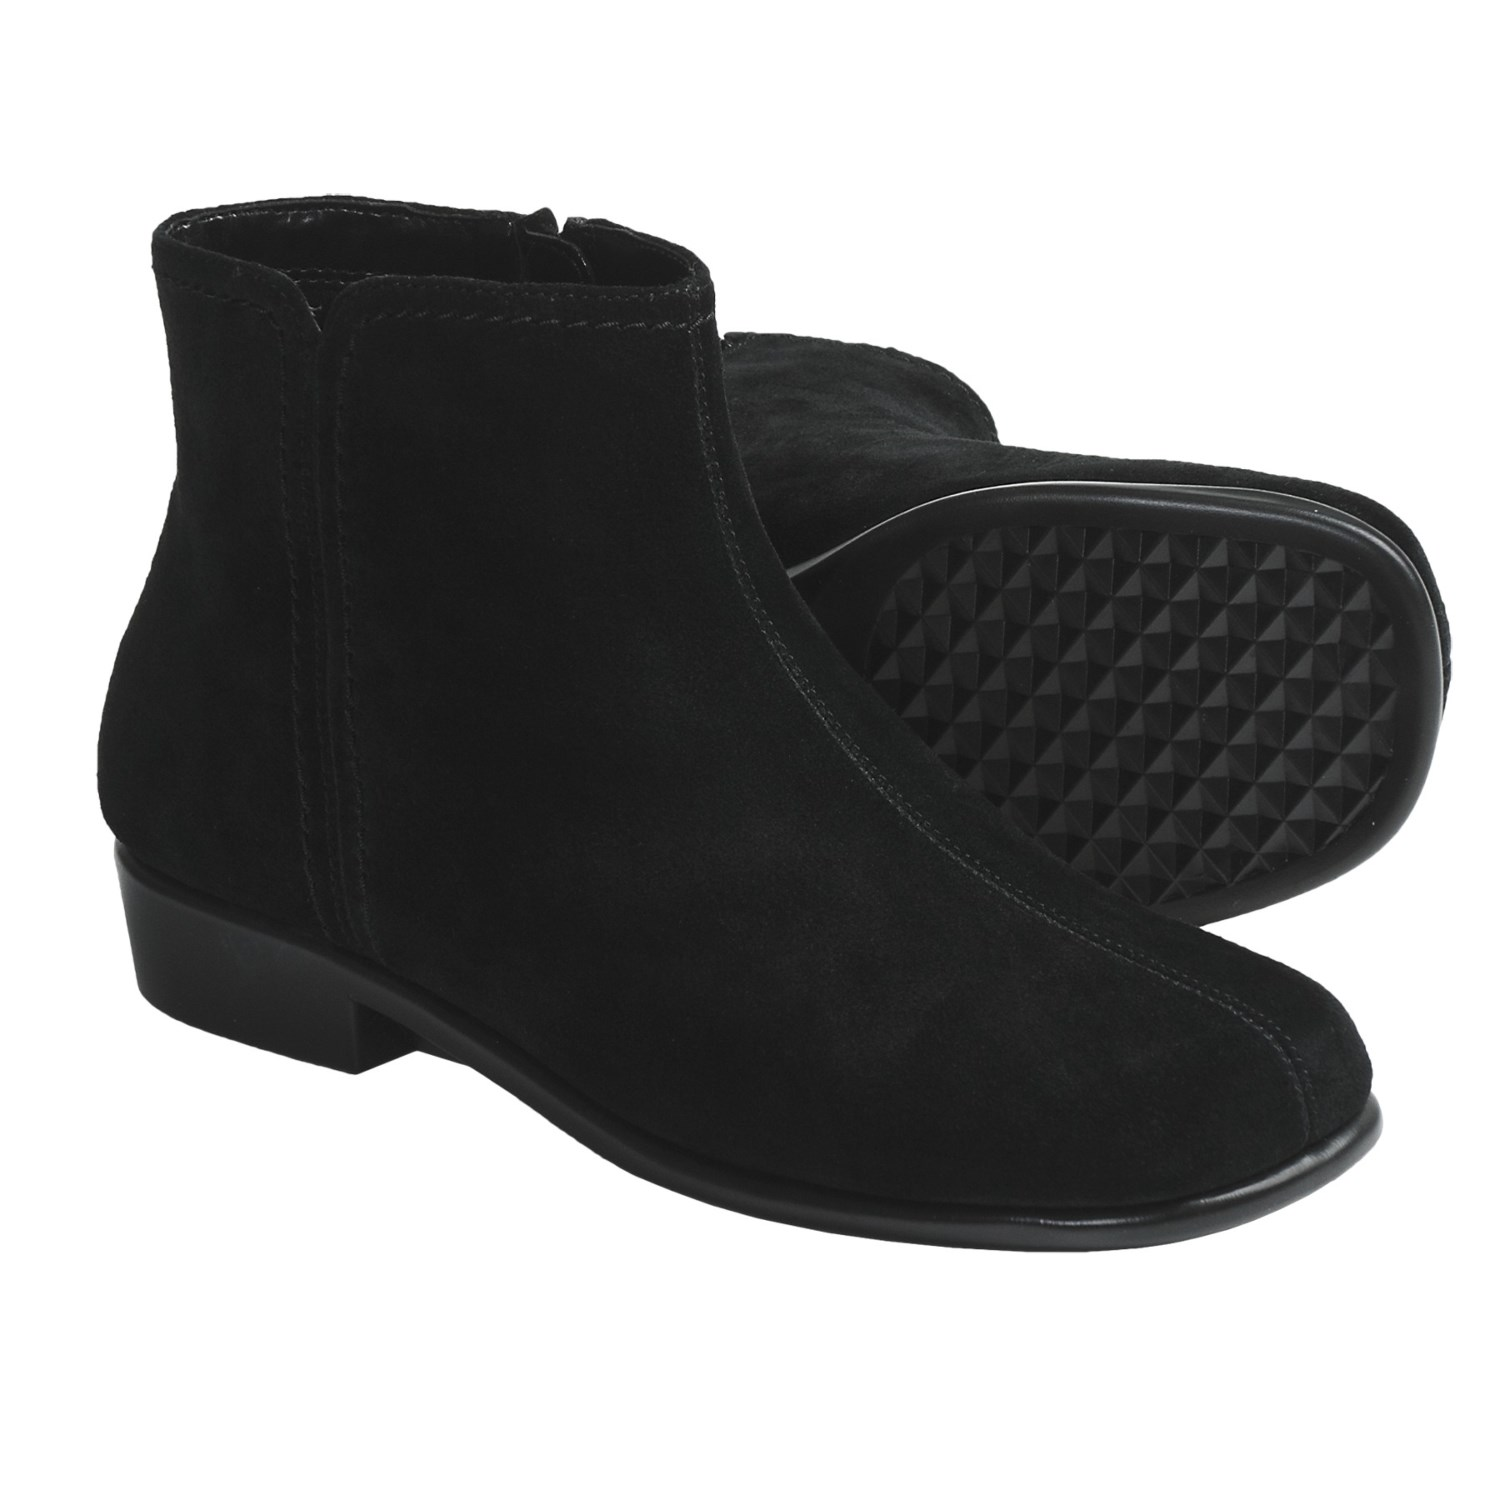 Black Ankle Boots For Women Aerosole 16